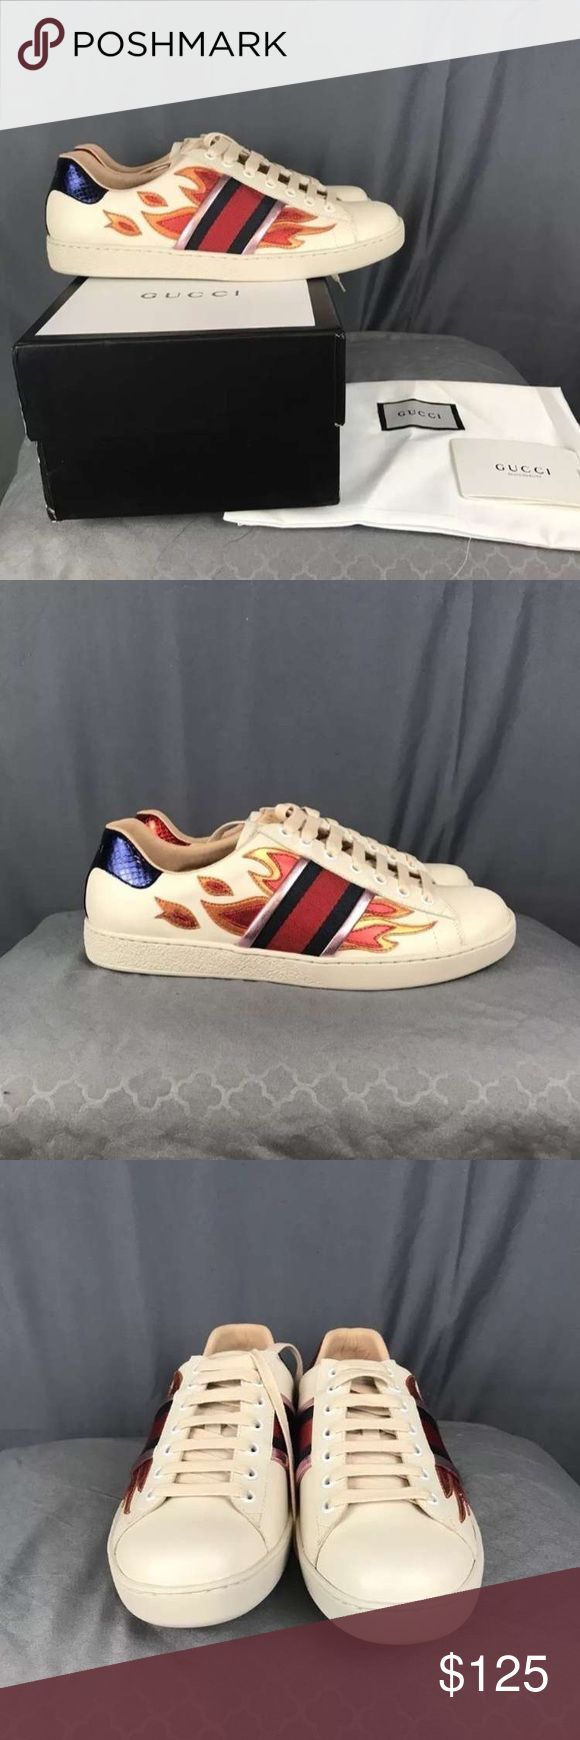 Gucci Flame ace Sneaker i Have sizes 6-13 Available!  Please Text me at (708) 762-1869 to see if i still have your size in stock or for more pictures Before purchase ! 100% authentic  comes with Box , Dustbags , Receipts And Carebooks price is Negotiable! Serious Inquires only! Gucci Shoes Sneakers